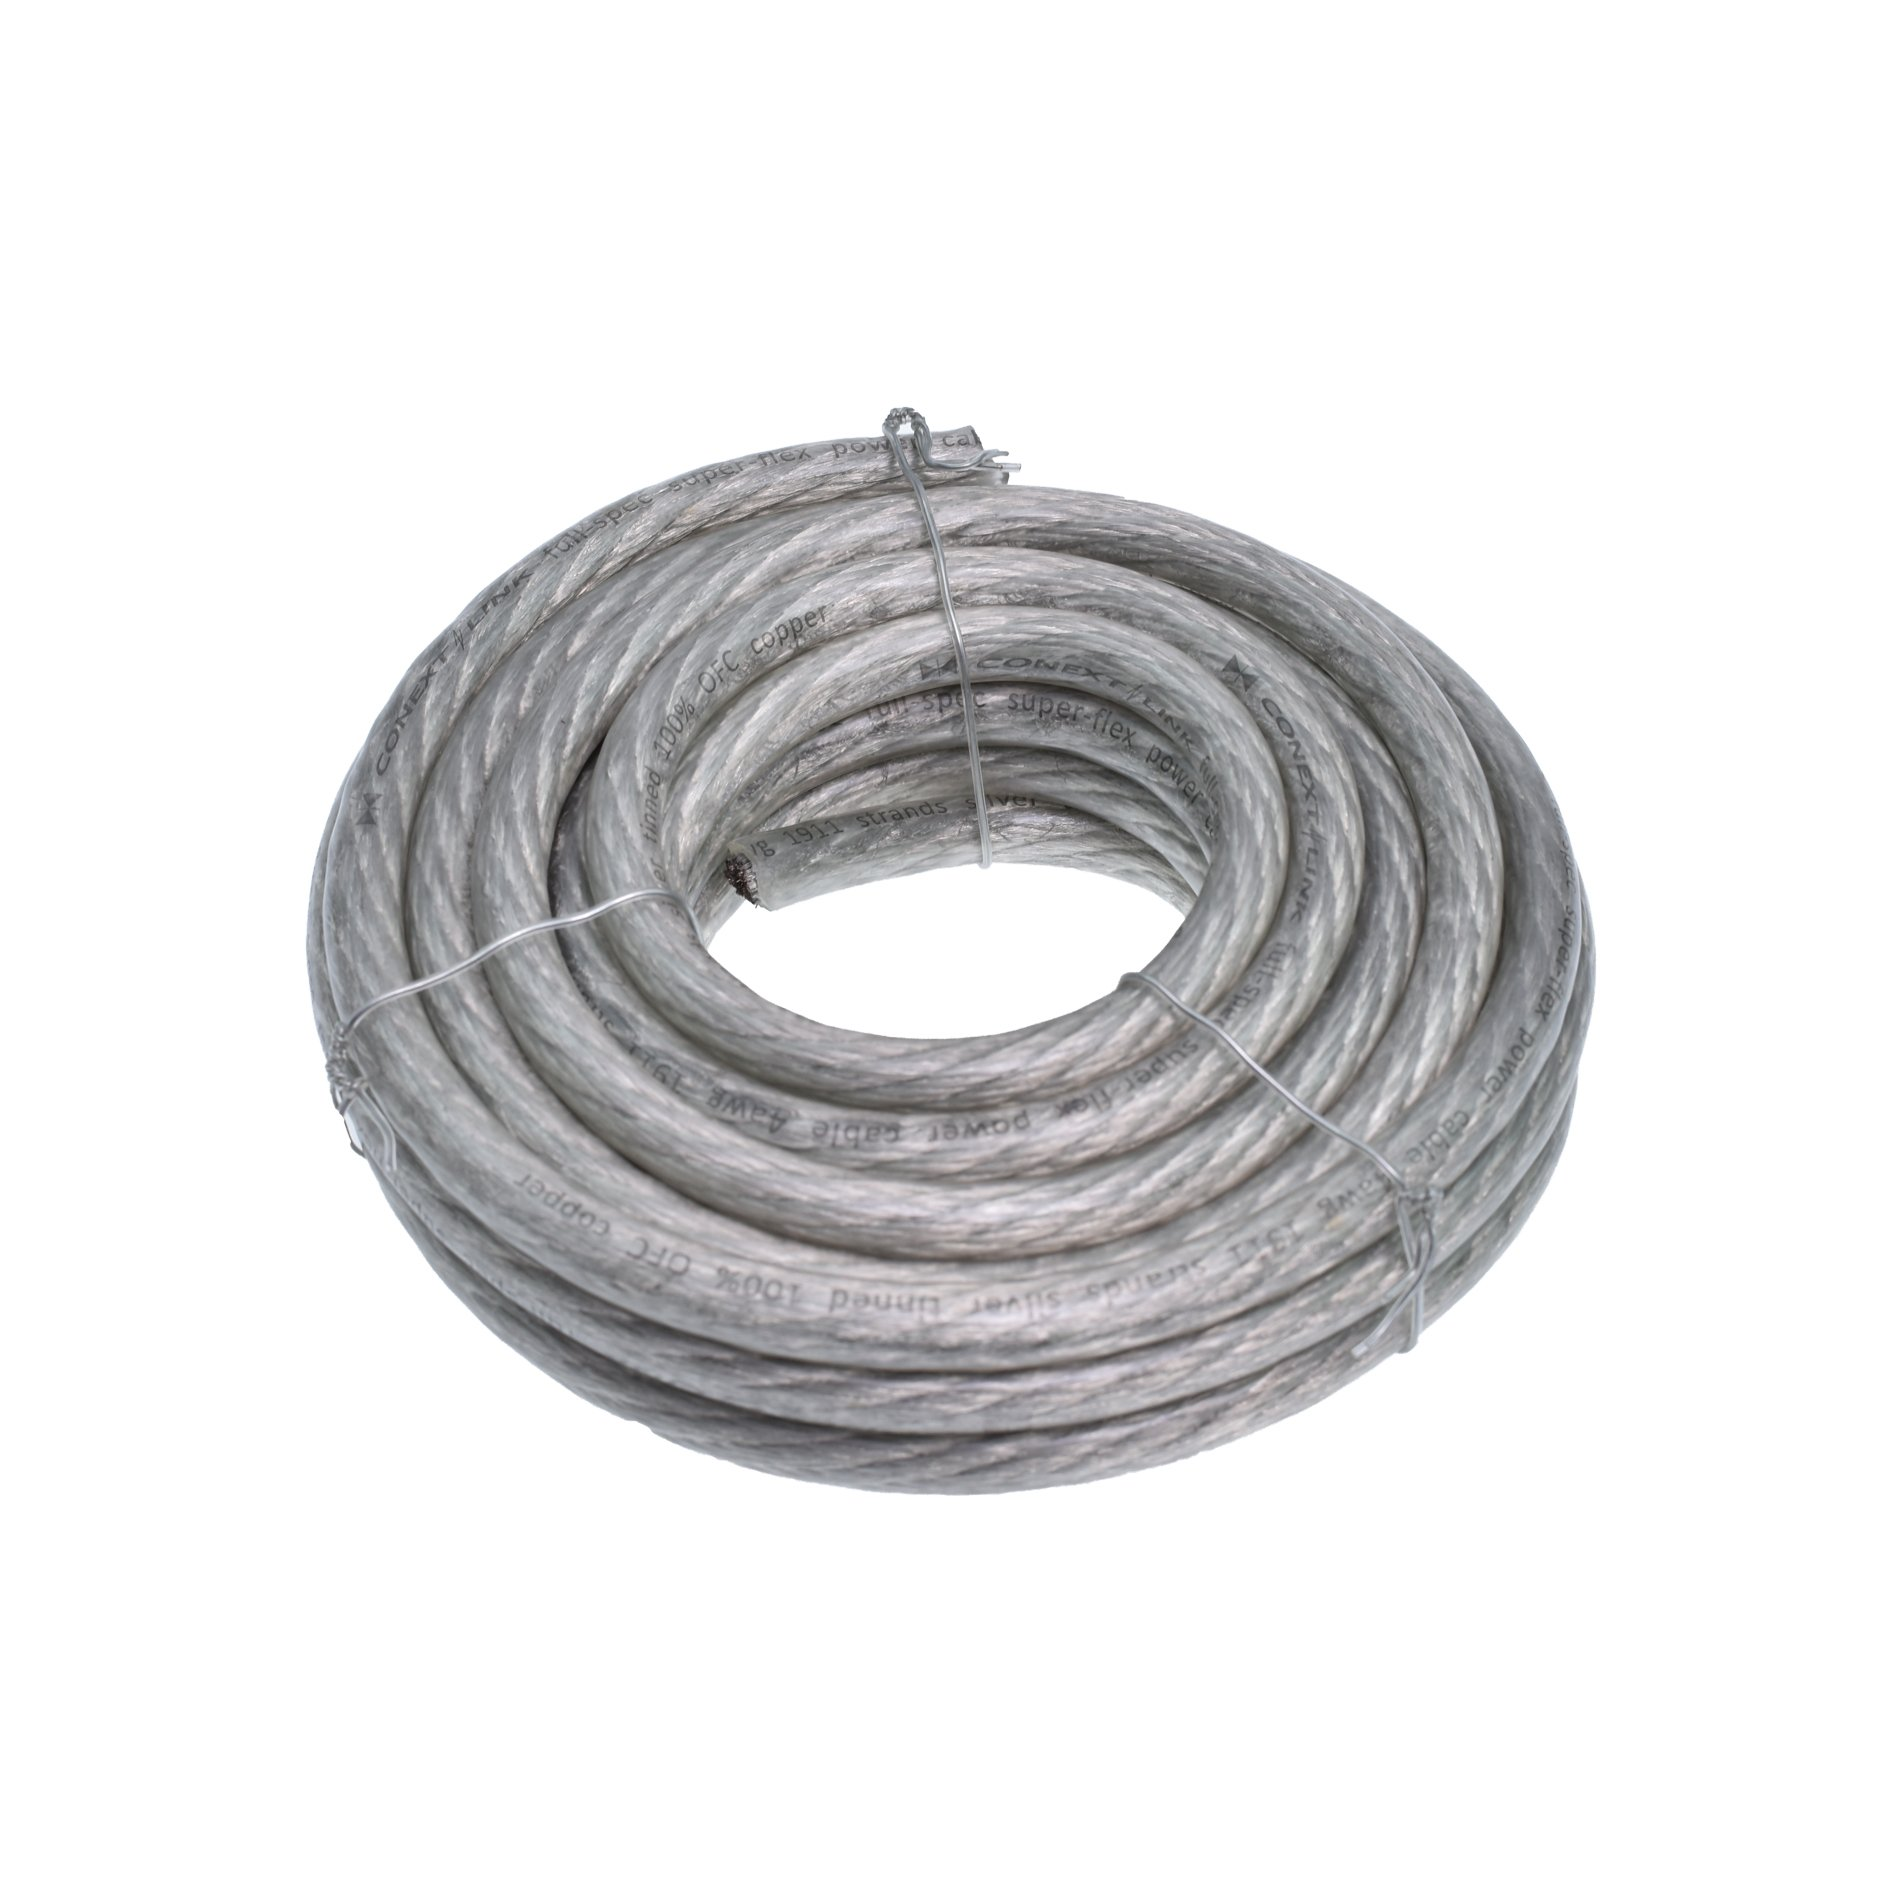 Conext Link 20 FT 4 AWG GA Full Gauge Battery Power Cable Ground Wire Clear Silver OFC Copper